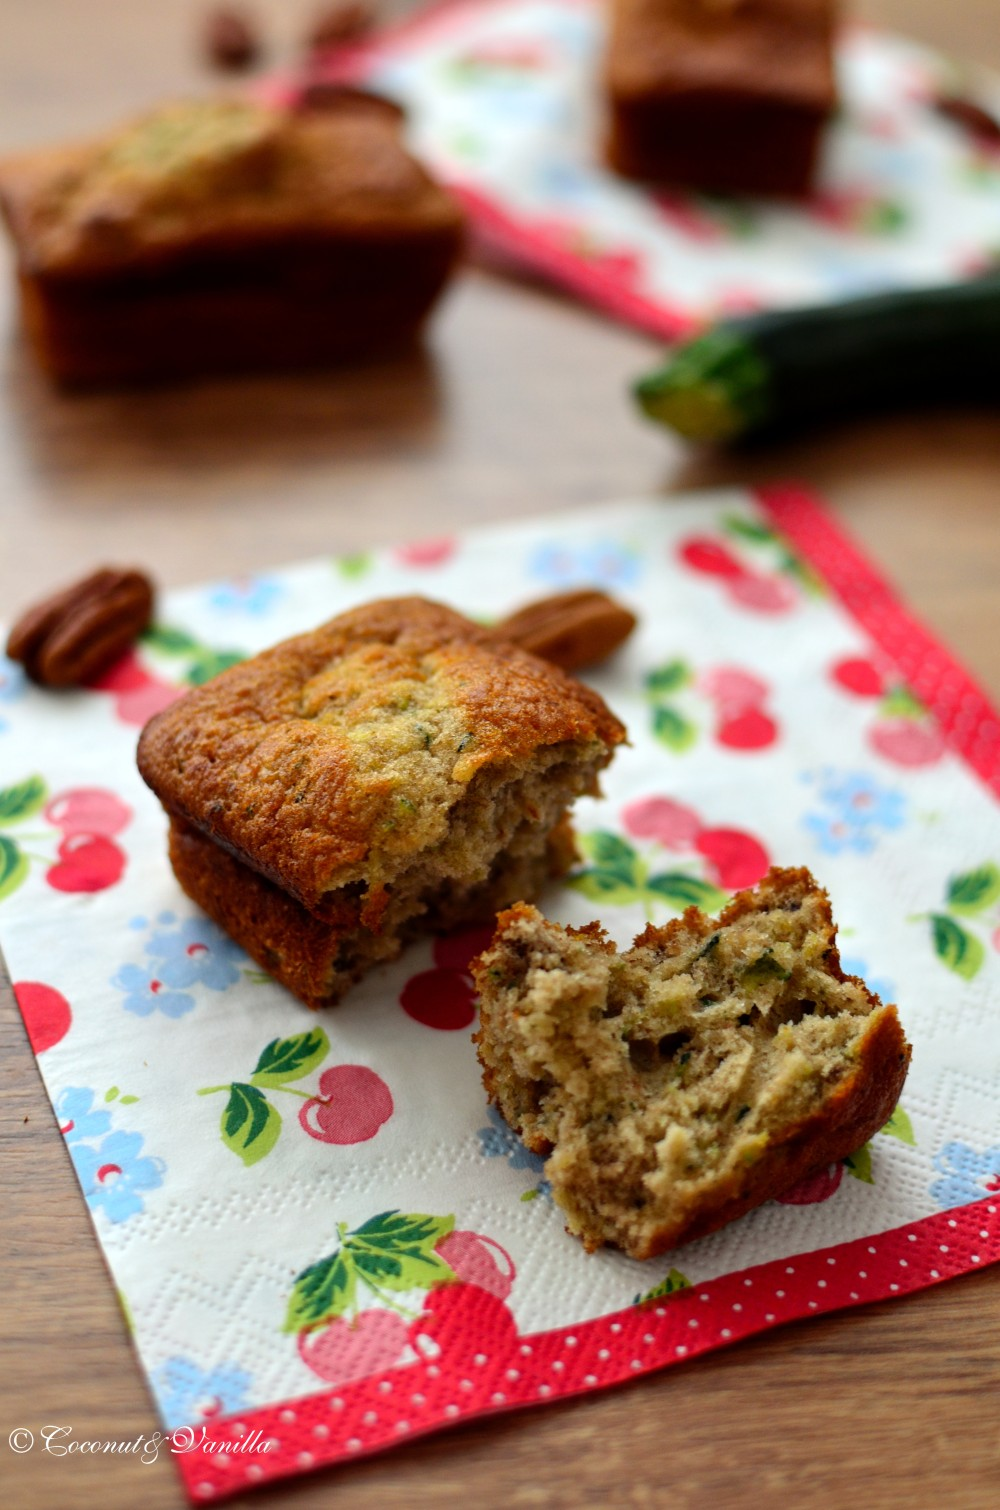 Zucchini-Banana-Bread with Pecans